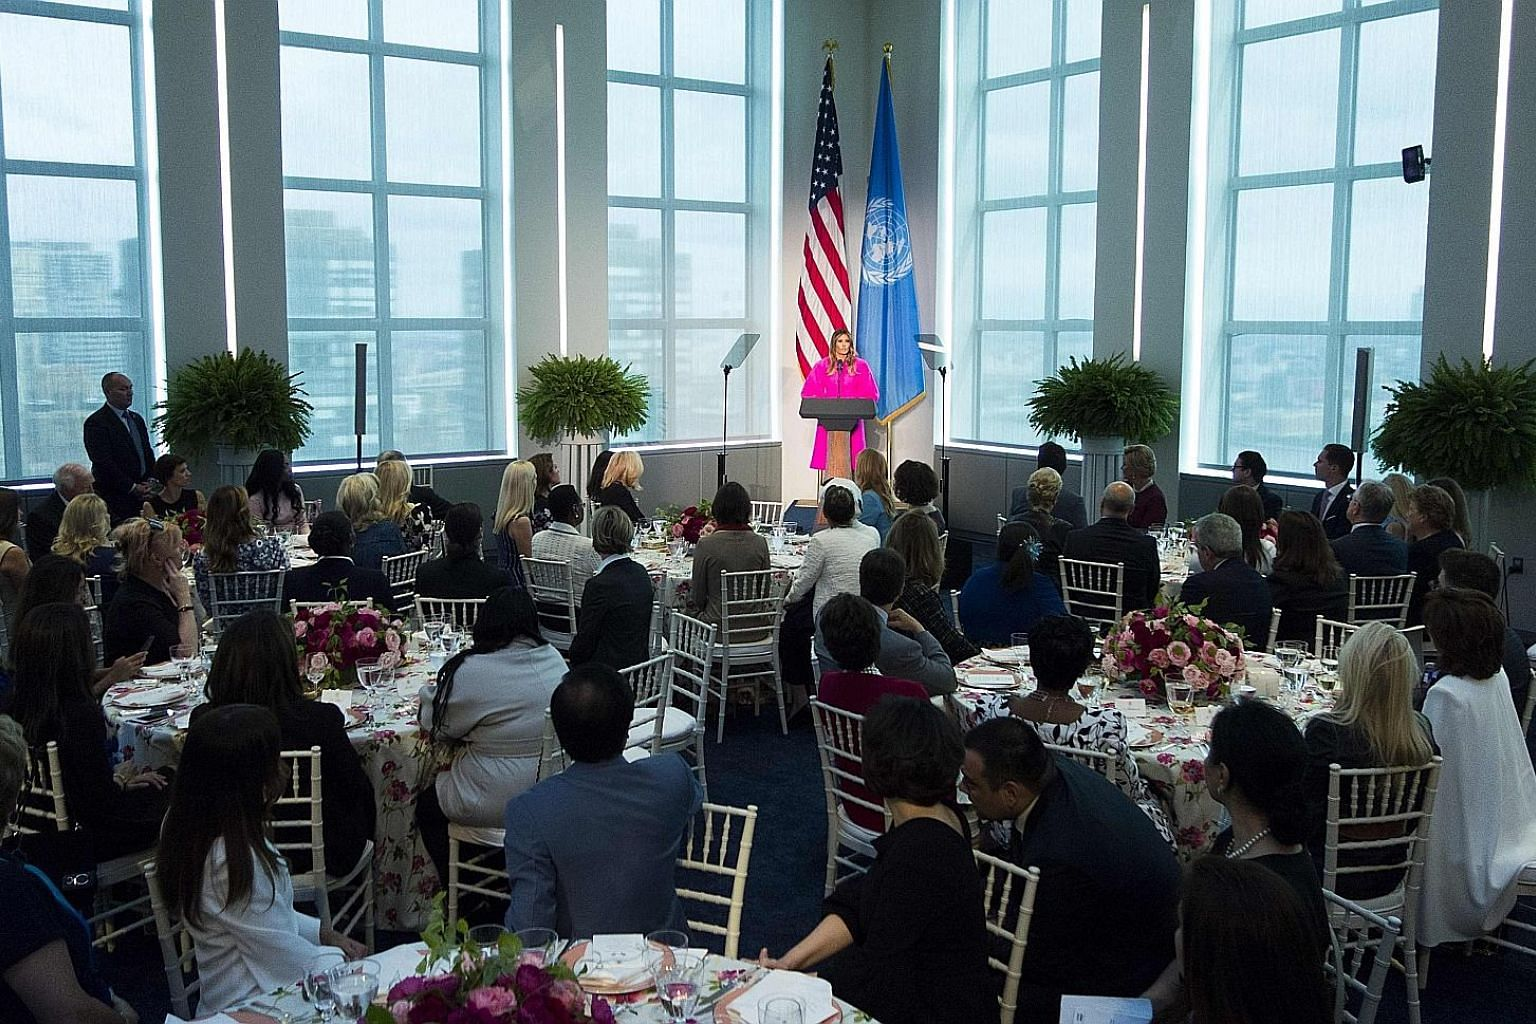 Far right: US First Lady Melania Trump speaking at a luncheon for spouses of world leaders at the US Mission to the UN in New York on Wednesday. Some social media users mocked her speech against bullying given that President Donald Trump himself has